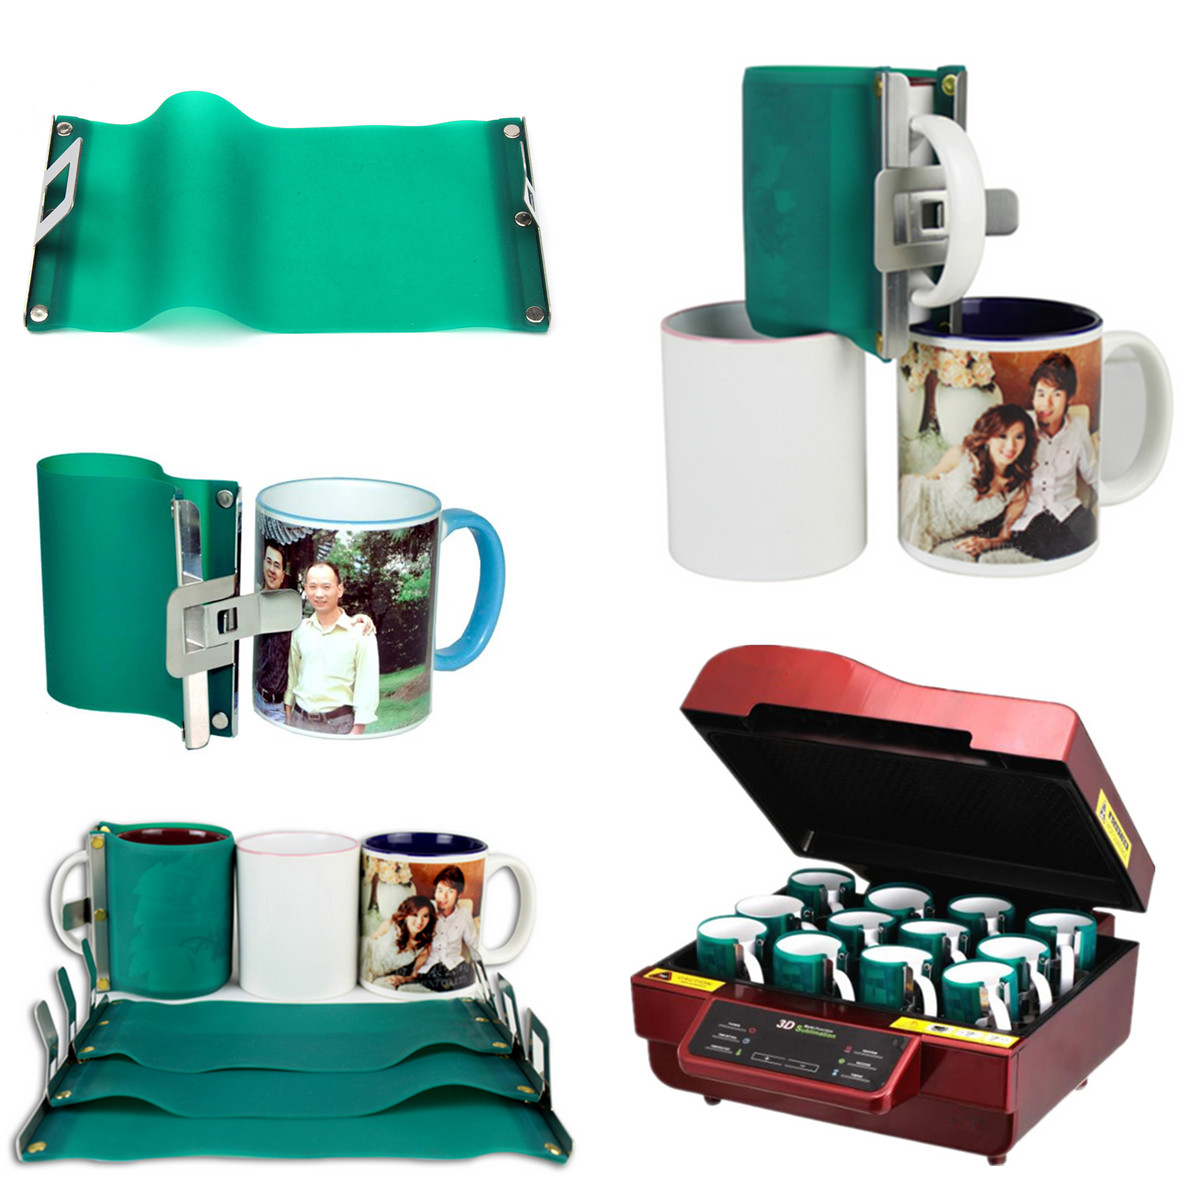 3D Sublimation Silicone Mug Wrap Rubber Cup Clamp Fixture for Printing Mug 300ml